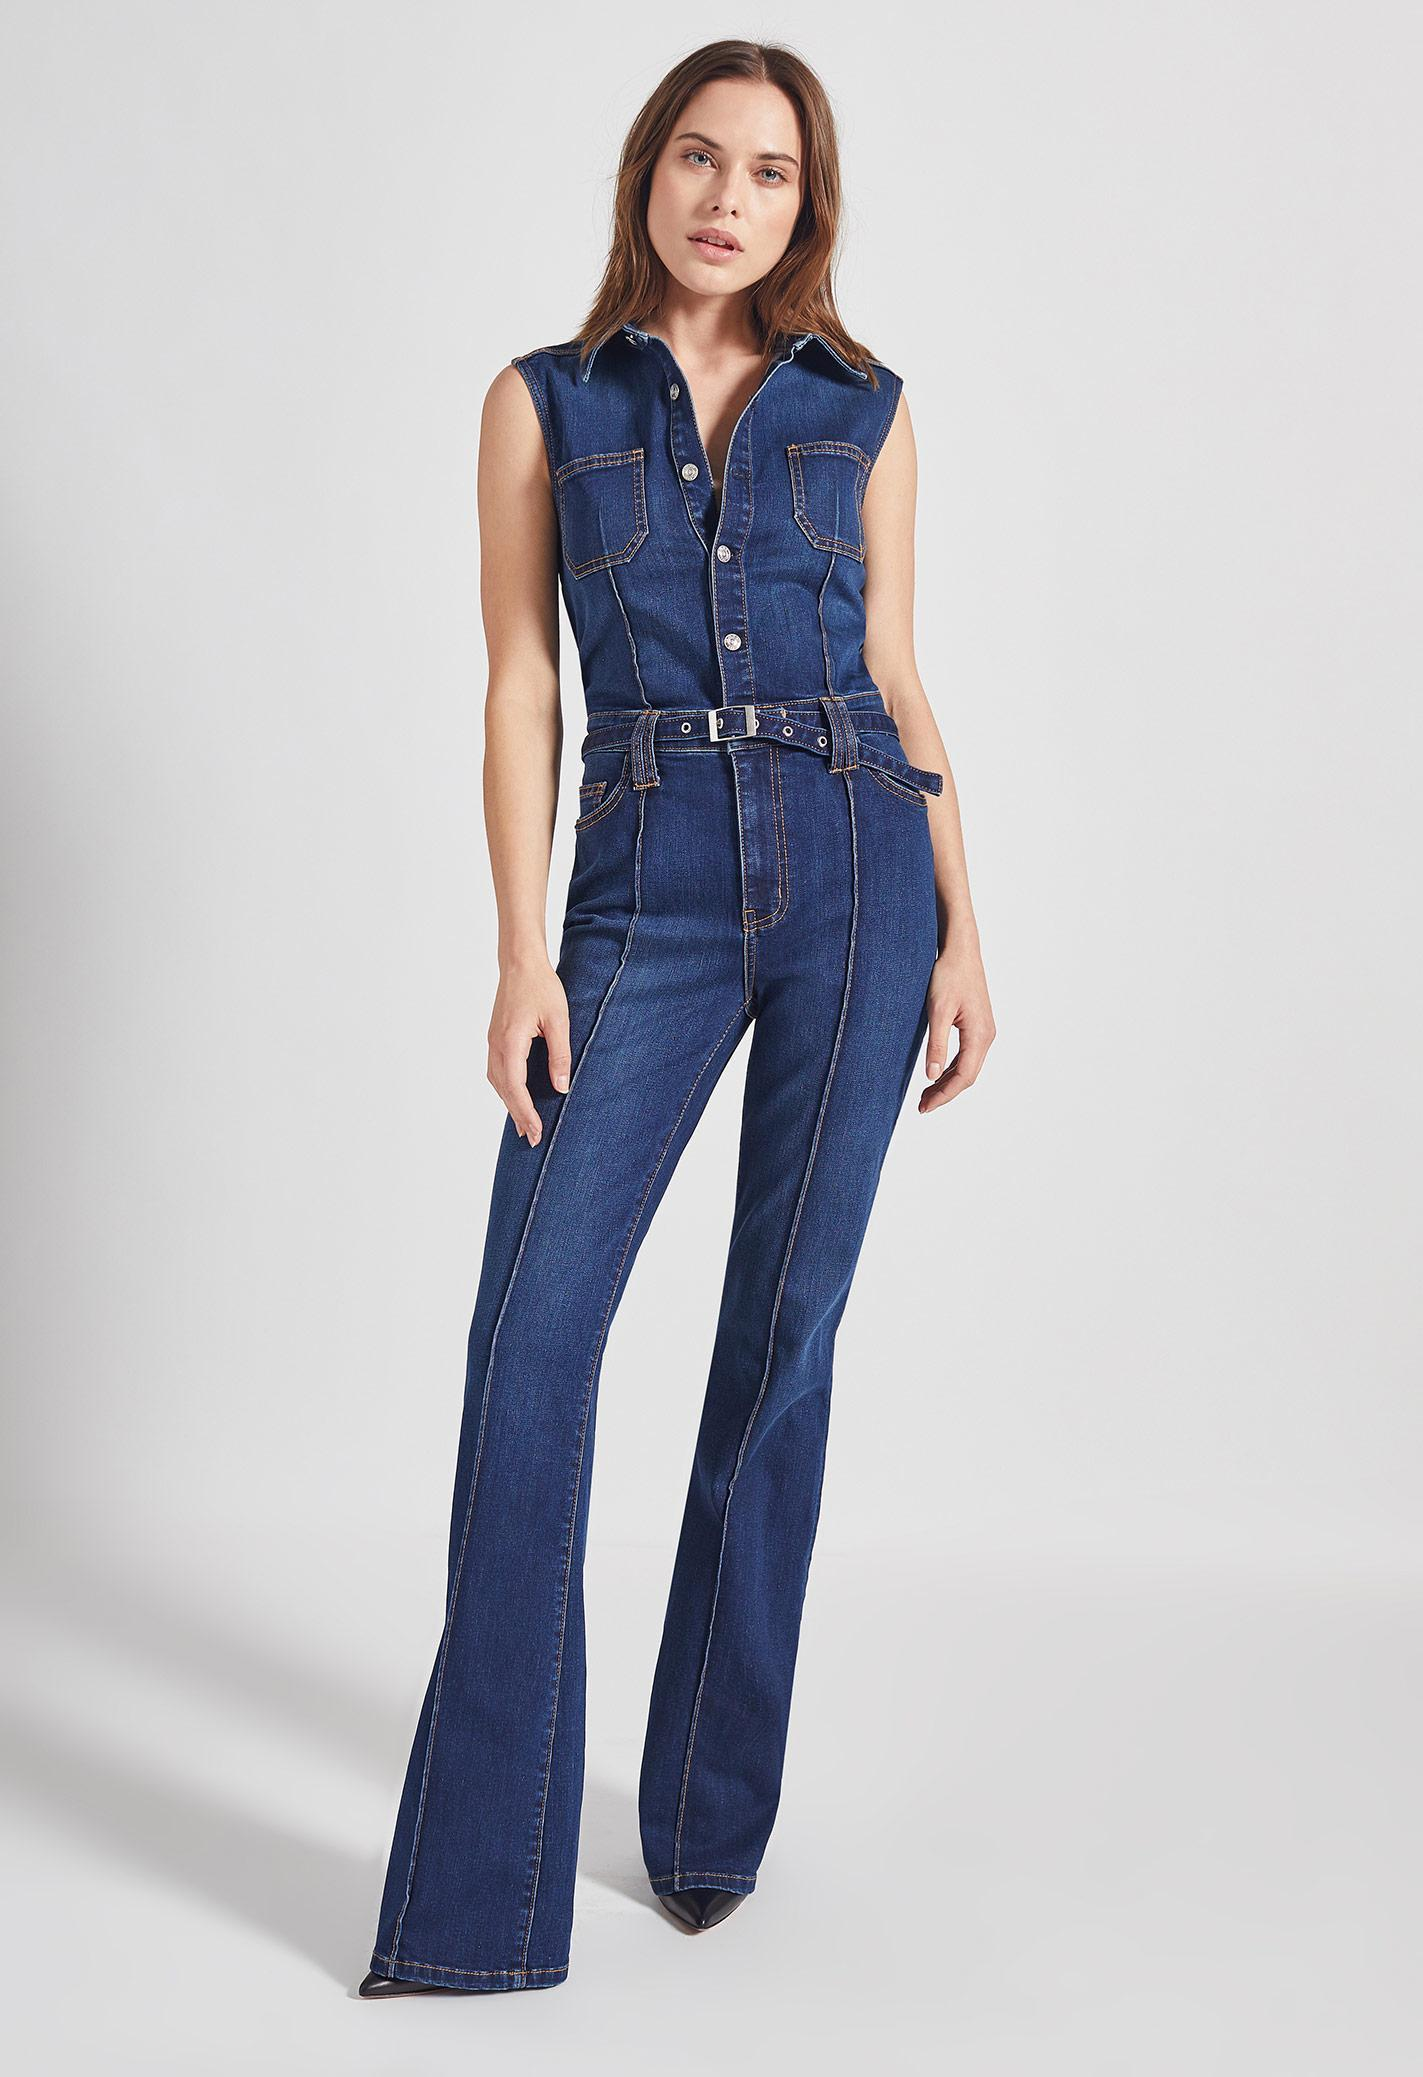 6dd88f5625 Lyst - Current Elliott The Zenith Jumpsuit in Blue - Save 10%